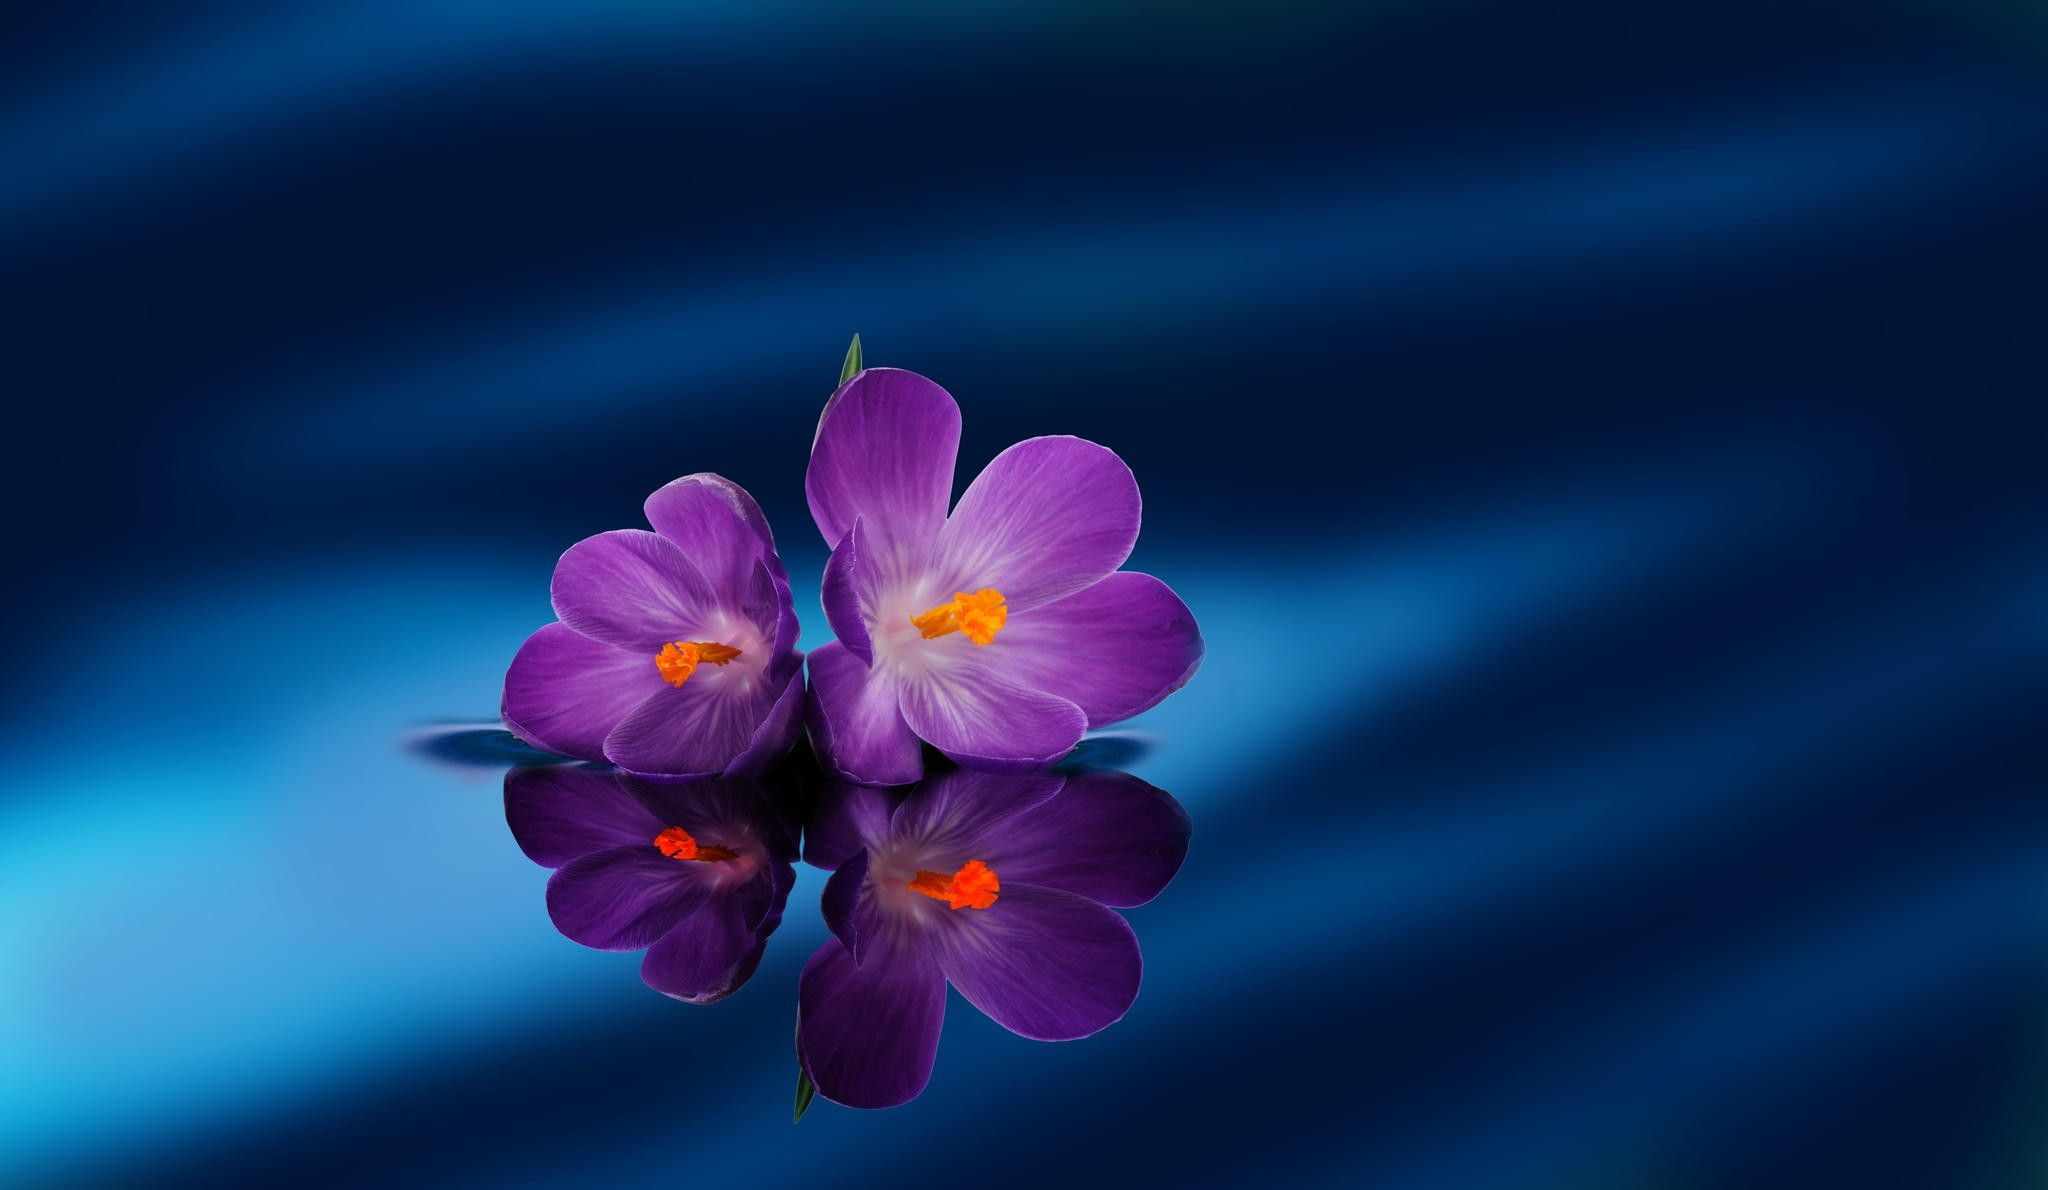 Flowers Purple Flowers Photography Blue Best Wallpapers For High Resolution Hd 16 9 Wqhd Qwxga 1080p Purple Flower Pictures Flowers Photography Purple Flowers